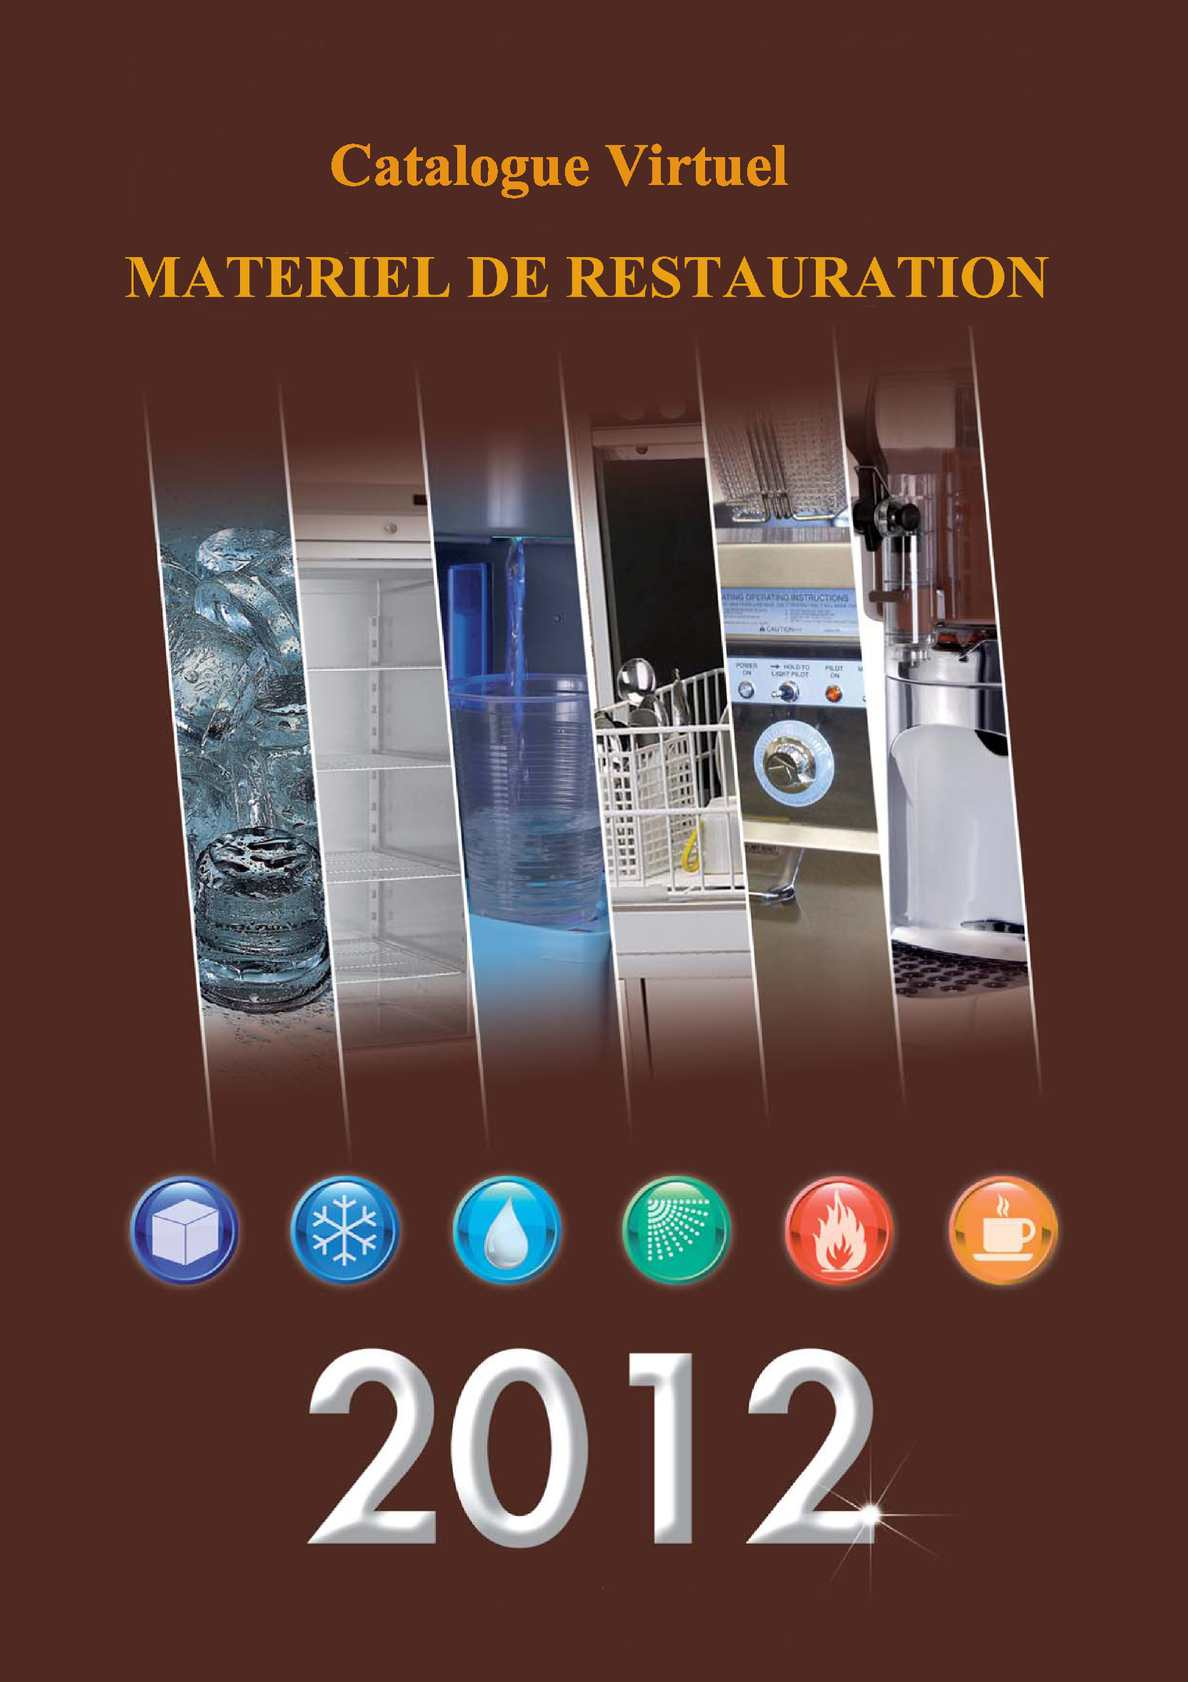 Calam o catalogue virtuel du mat riel professionnel de for Materiel de restauration